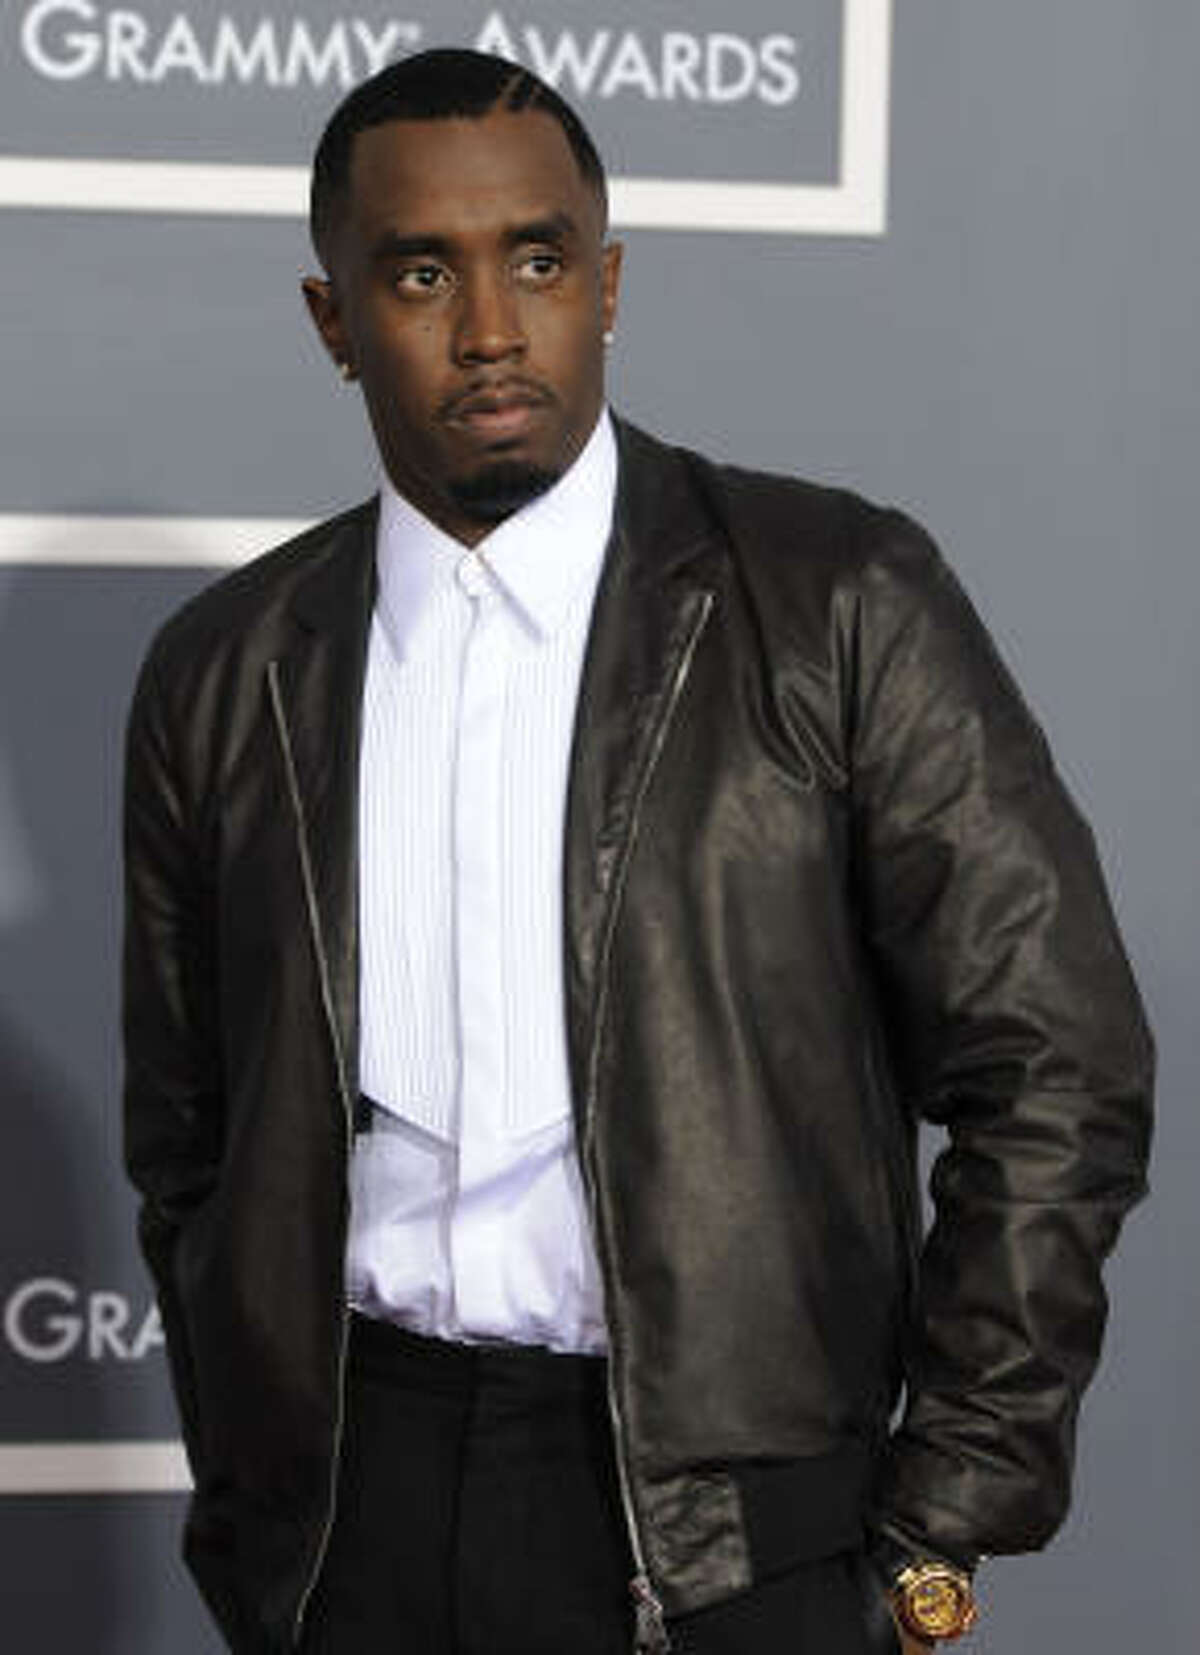 Diddy, in crisp white tux shirt that oddly works with a leather jacket